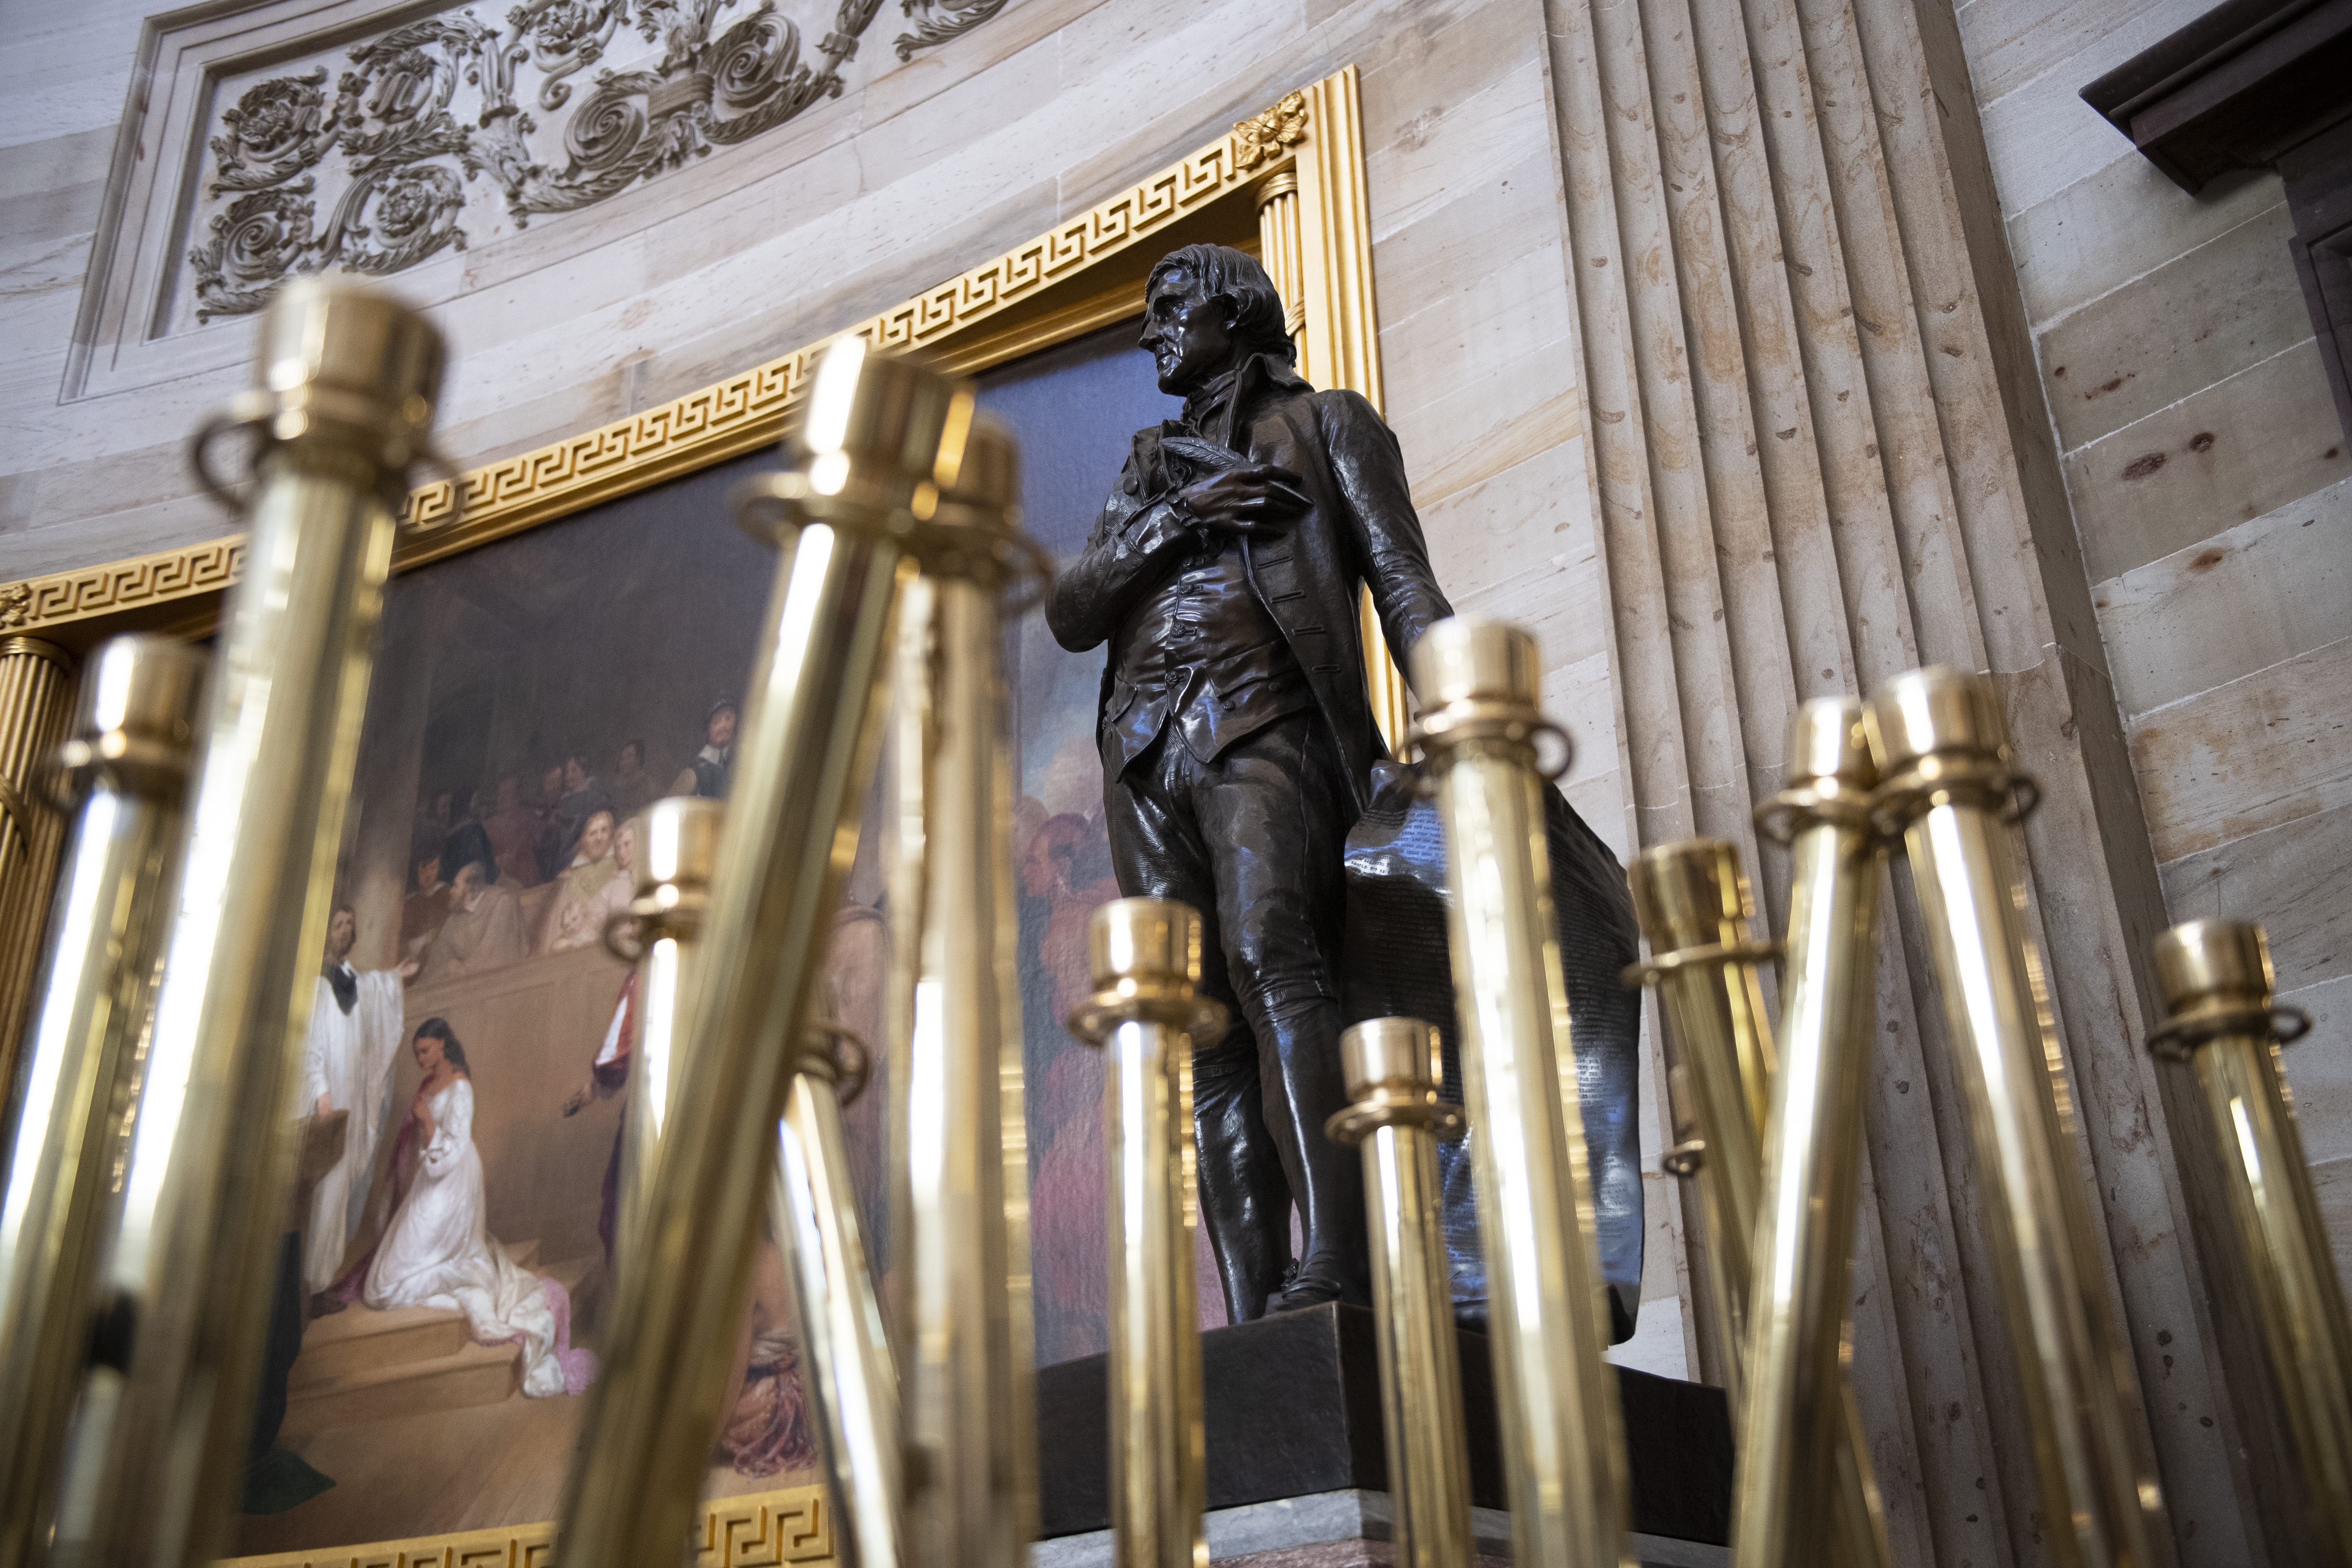 UNITED STATES - JANUARY 15: Stanchions frame a statue of Thomas Jefferson in the Capitol Rotunda in advance of the transmission of the articles of impeachment from the House to the Senate on Wednesday, Jan. 15, 2020. (Photo by Caroline Brehman/CQ Roll Call)